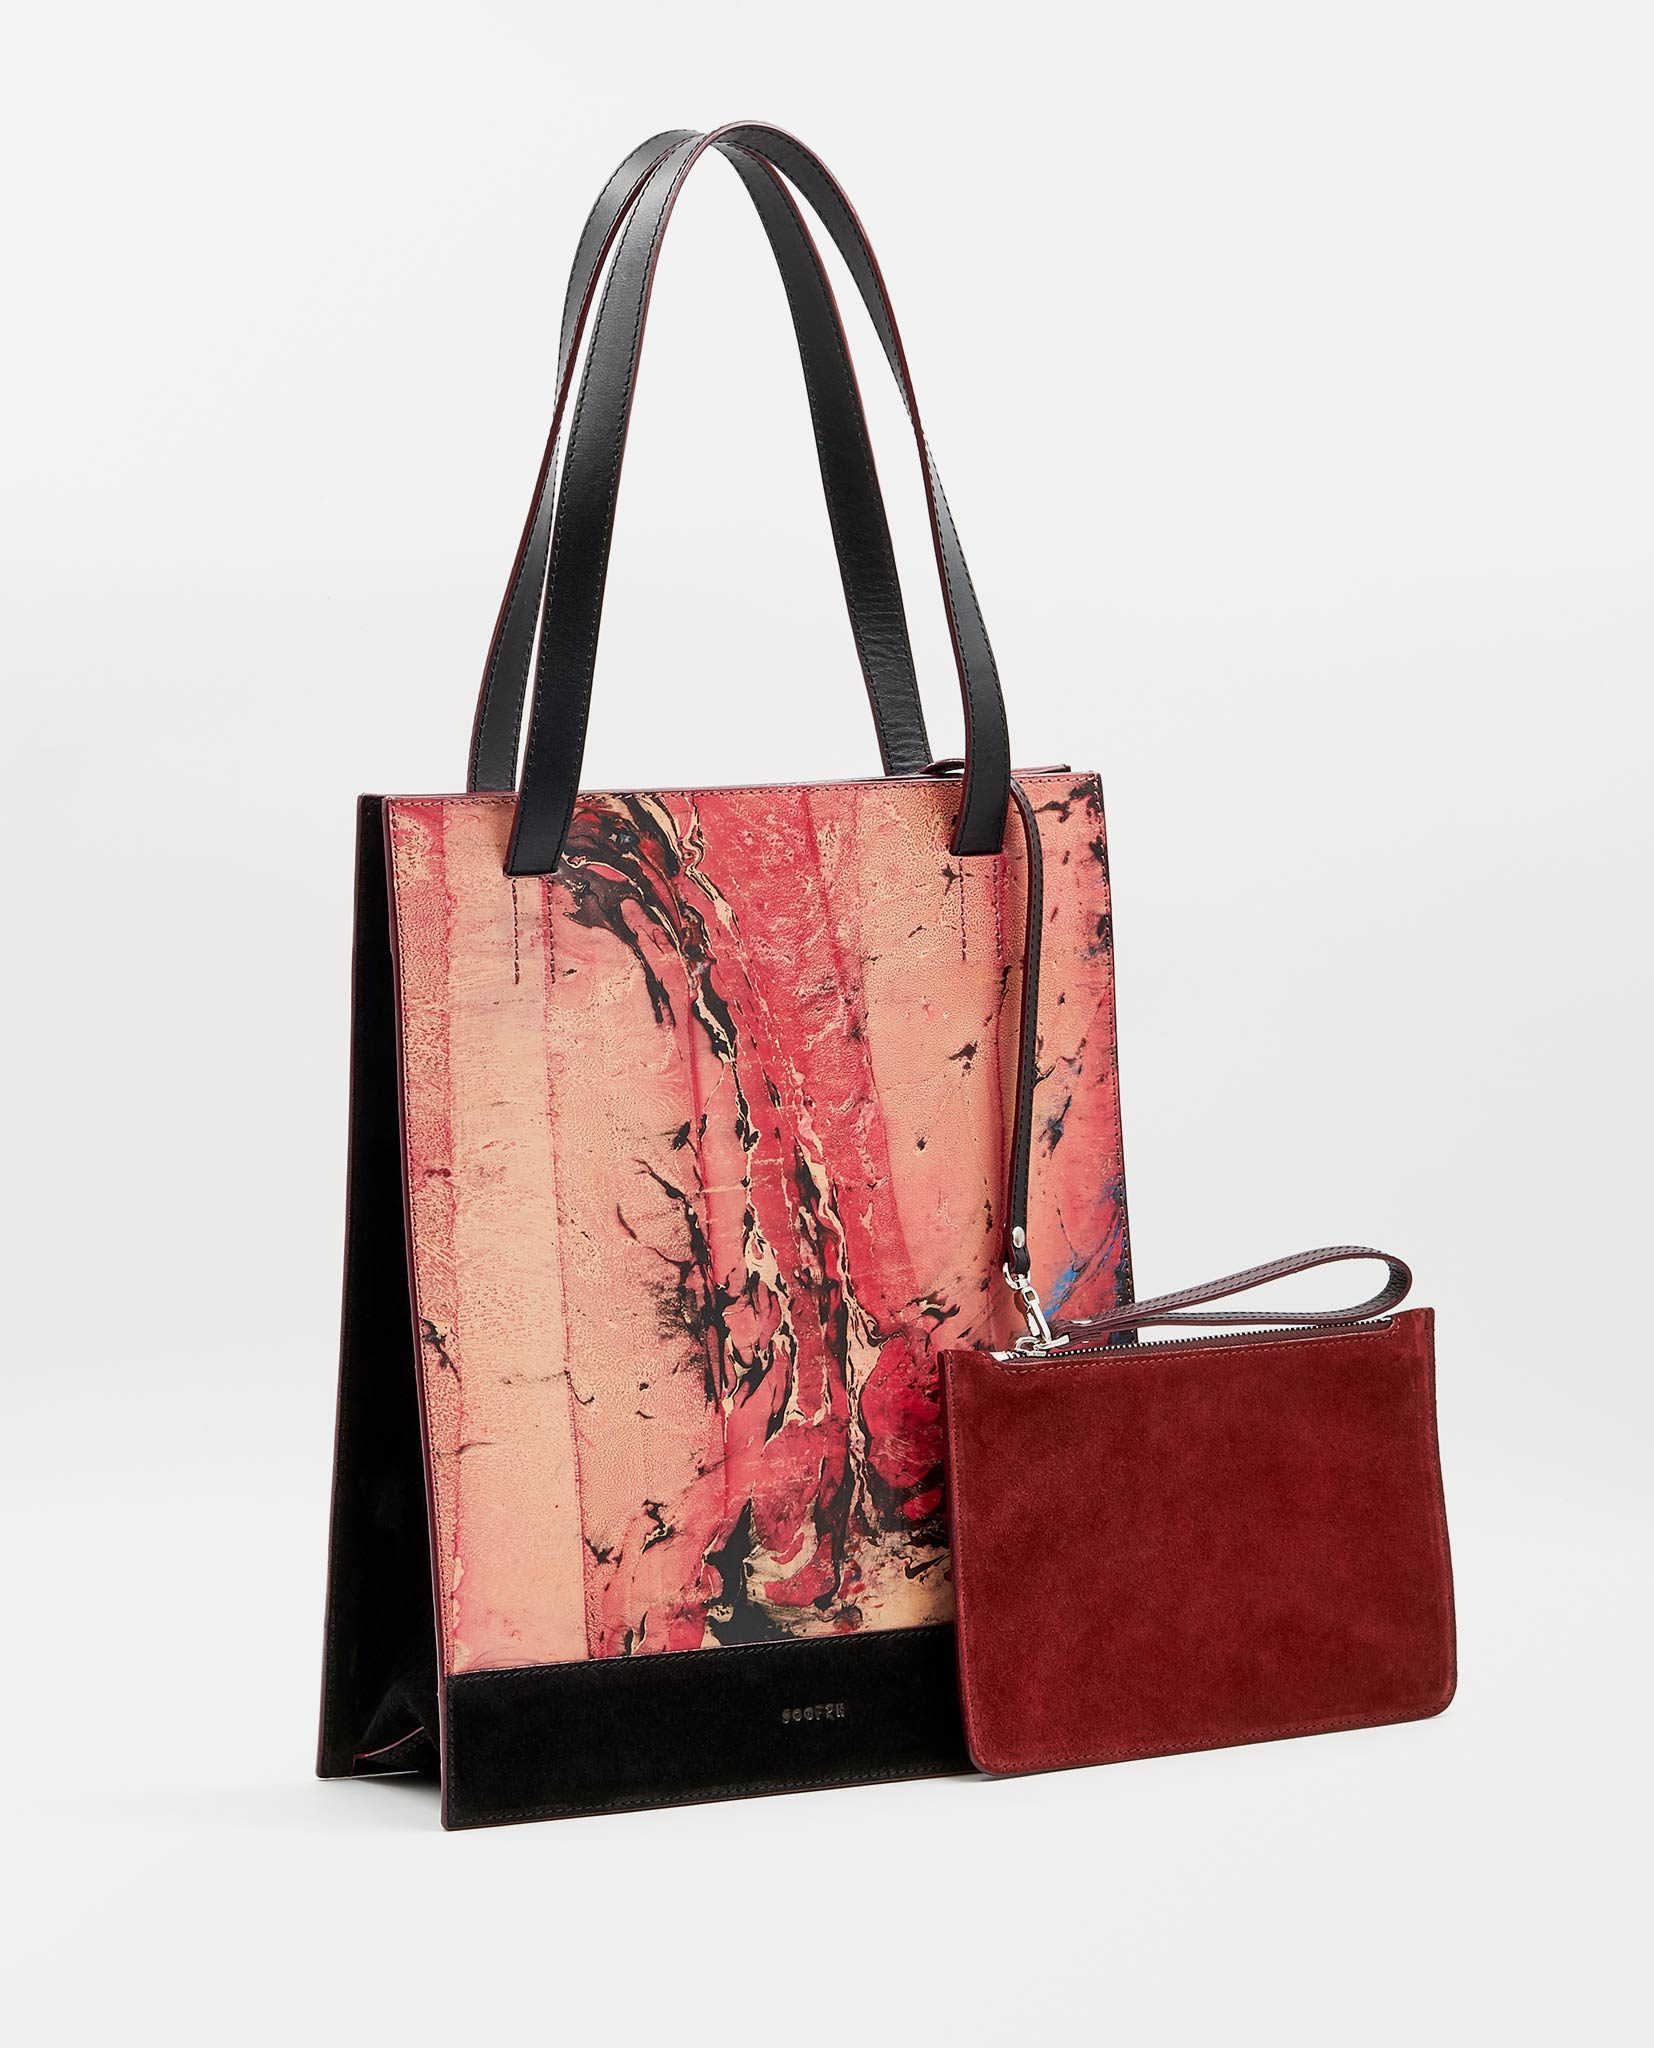 SOOFRE Berlin unique Shopper Bag marble red black